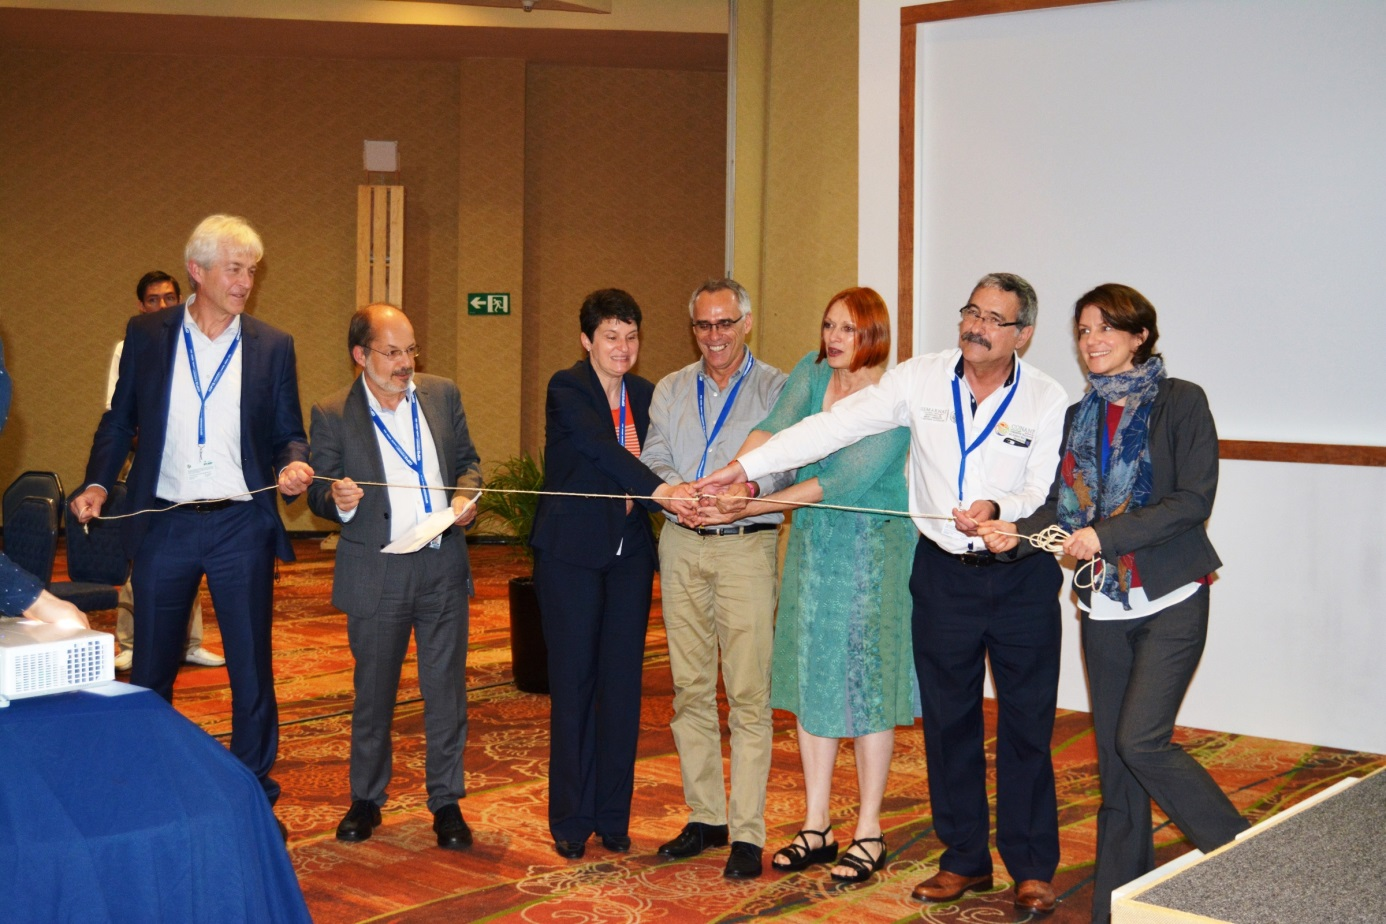 Cutting the ribbon during the official launch of the third thematic portal of the PANORAMA platform (left to right: Arno Sckeyde, GIZ; Harald Lossack, GIZ; Tanja Gönner, GIZ; Trevor Sandwith, IUCN; Elsa Nickel, BMUB; Ignacio March, CONANP; Ilona Porsché, GIZ) © GIZ